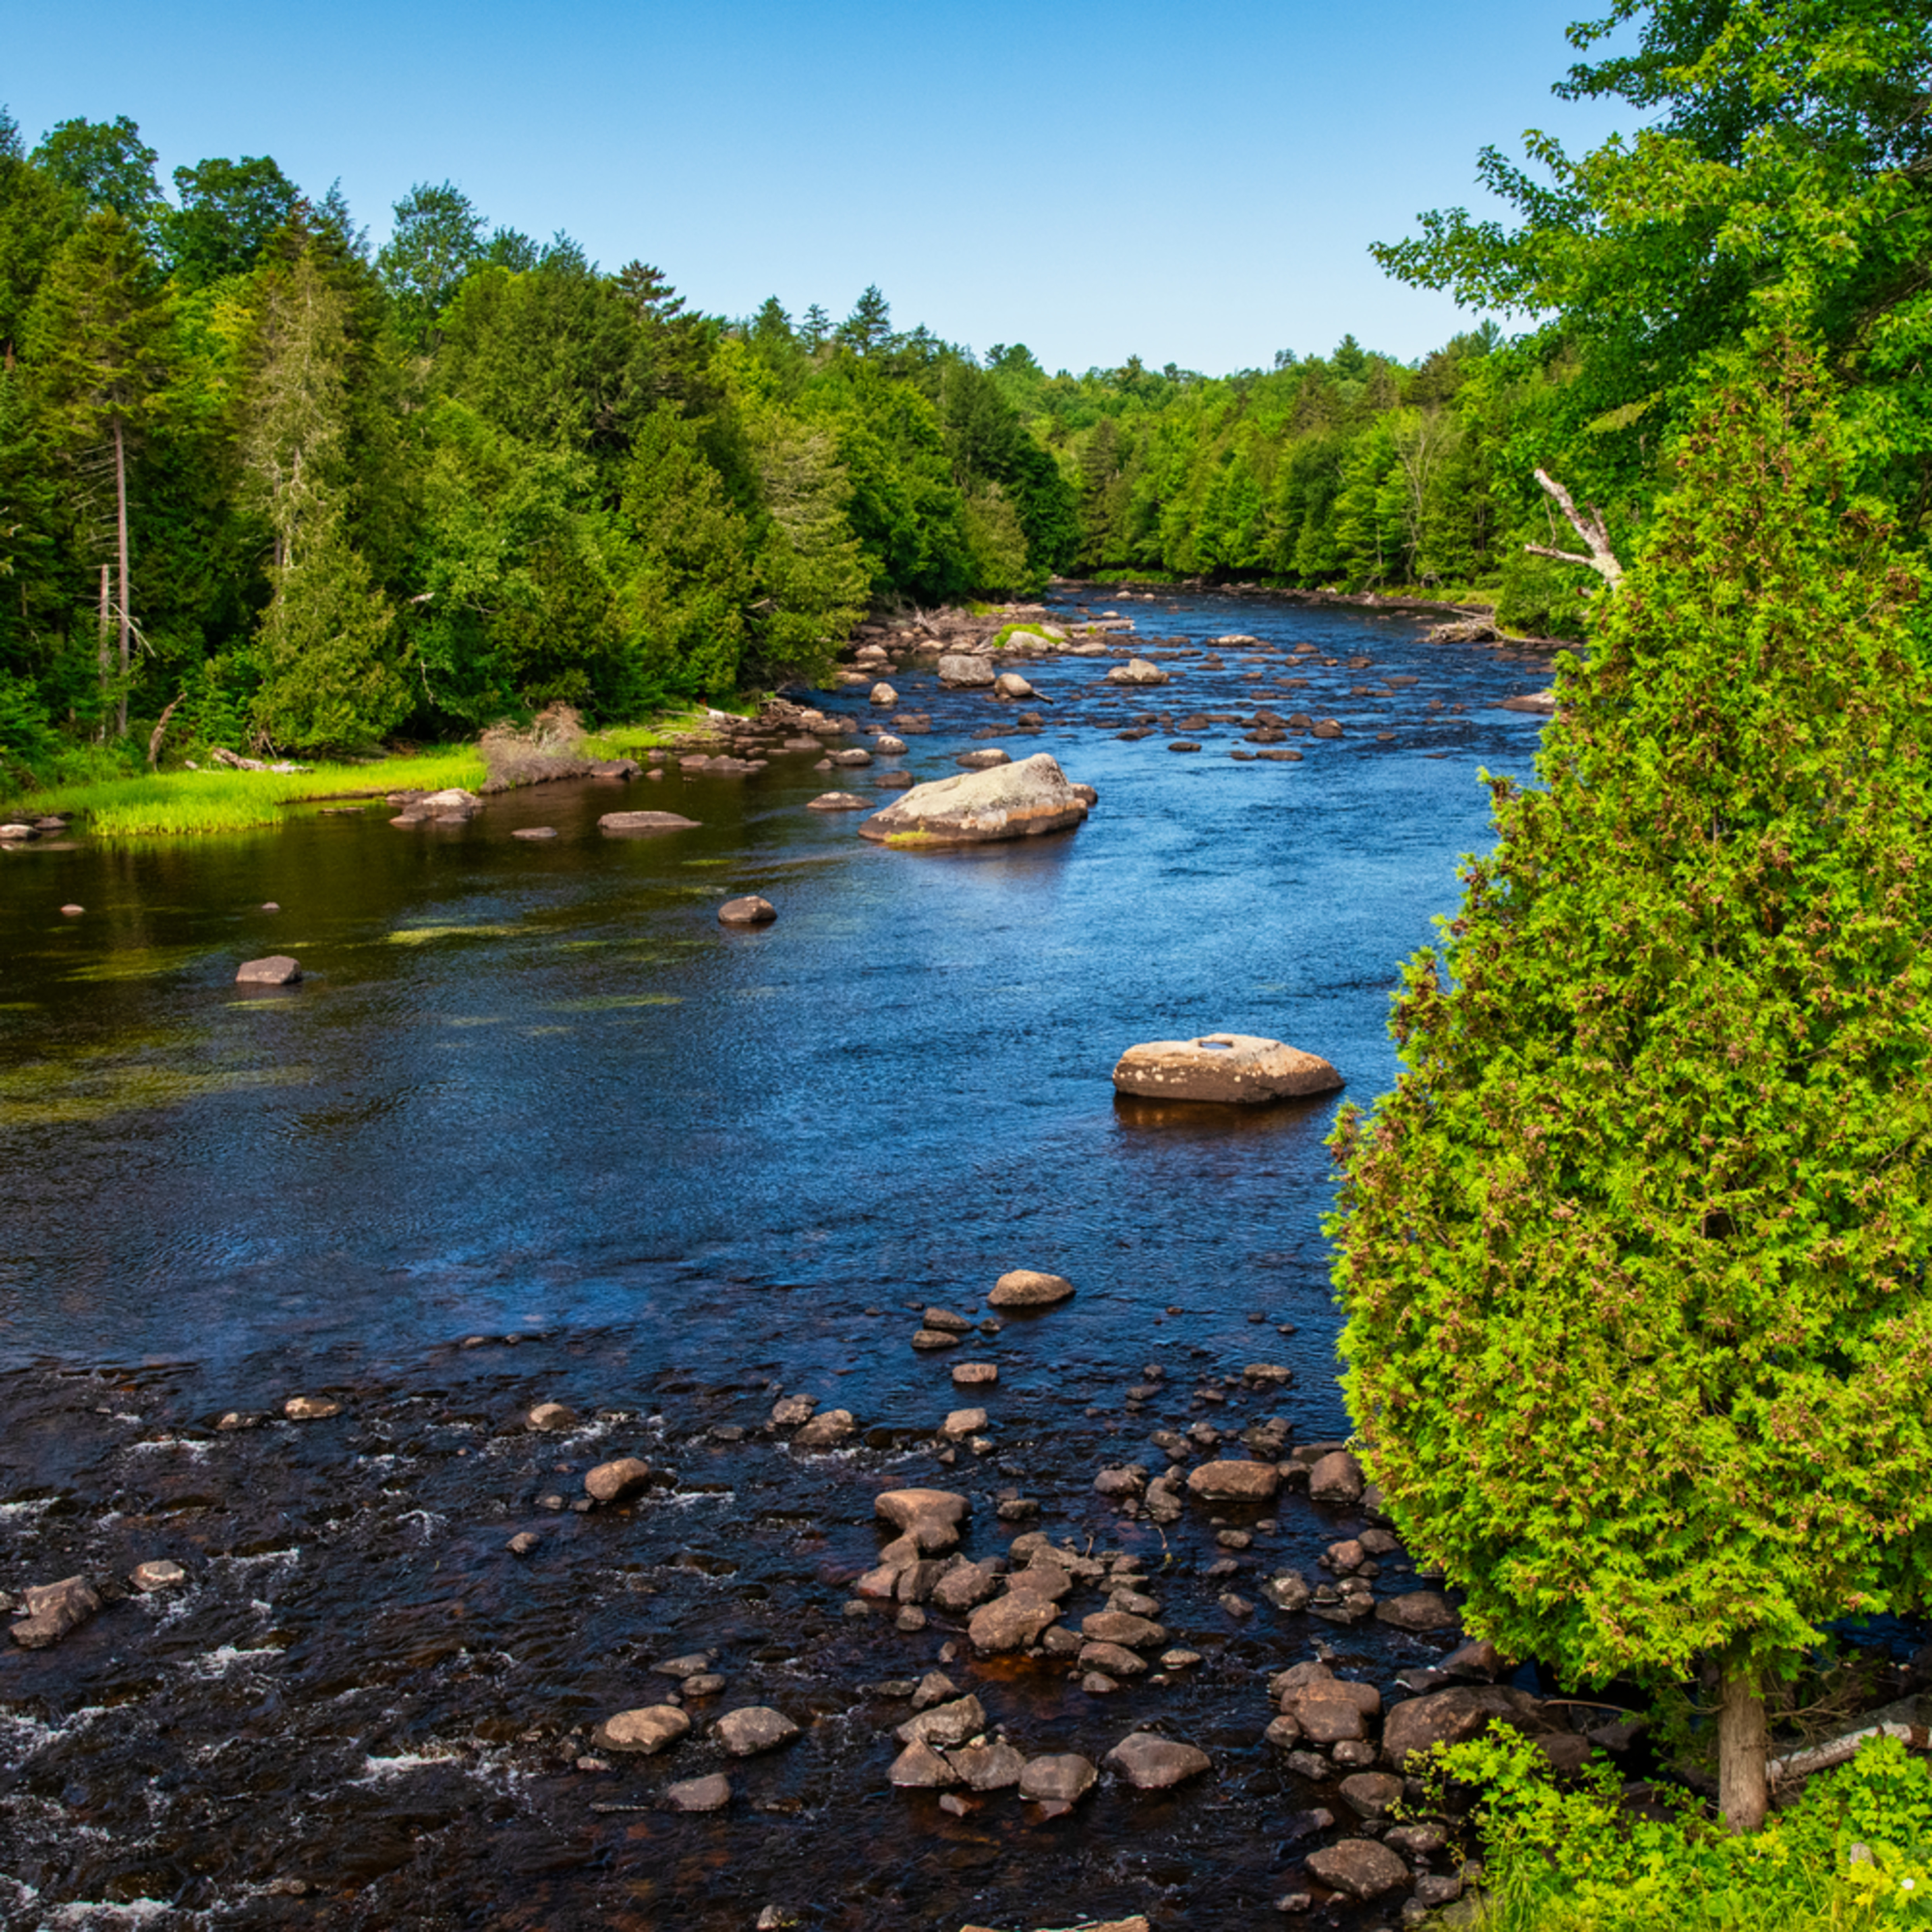 Andy crawford photography great chazy river overlook spoqdd